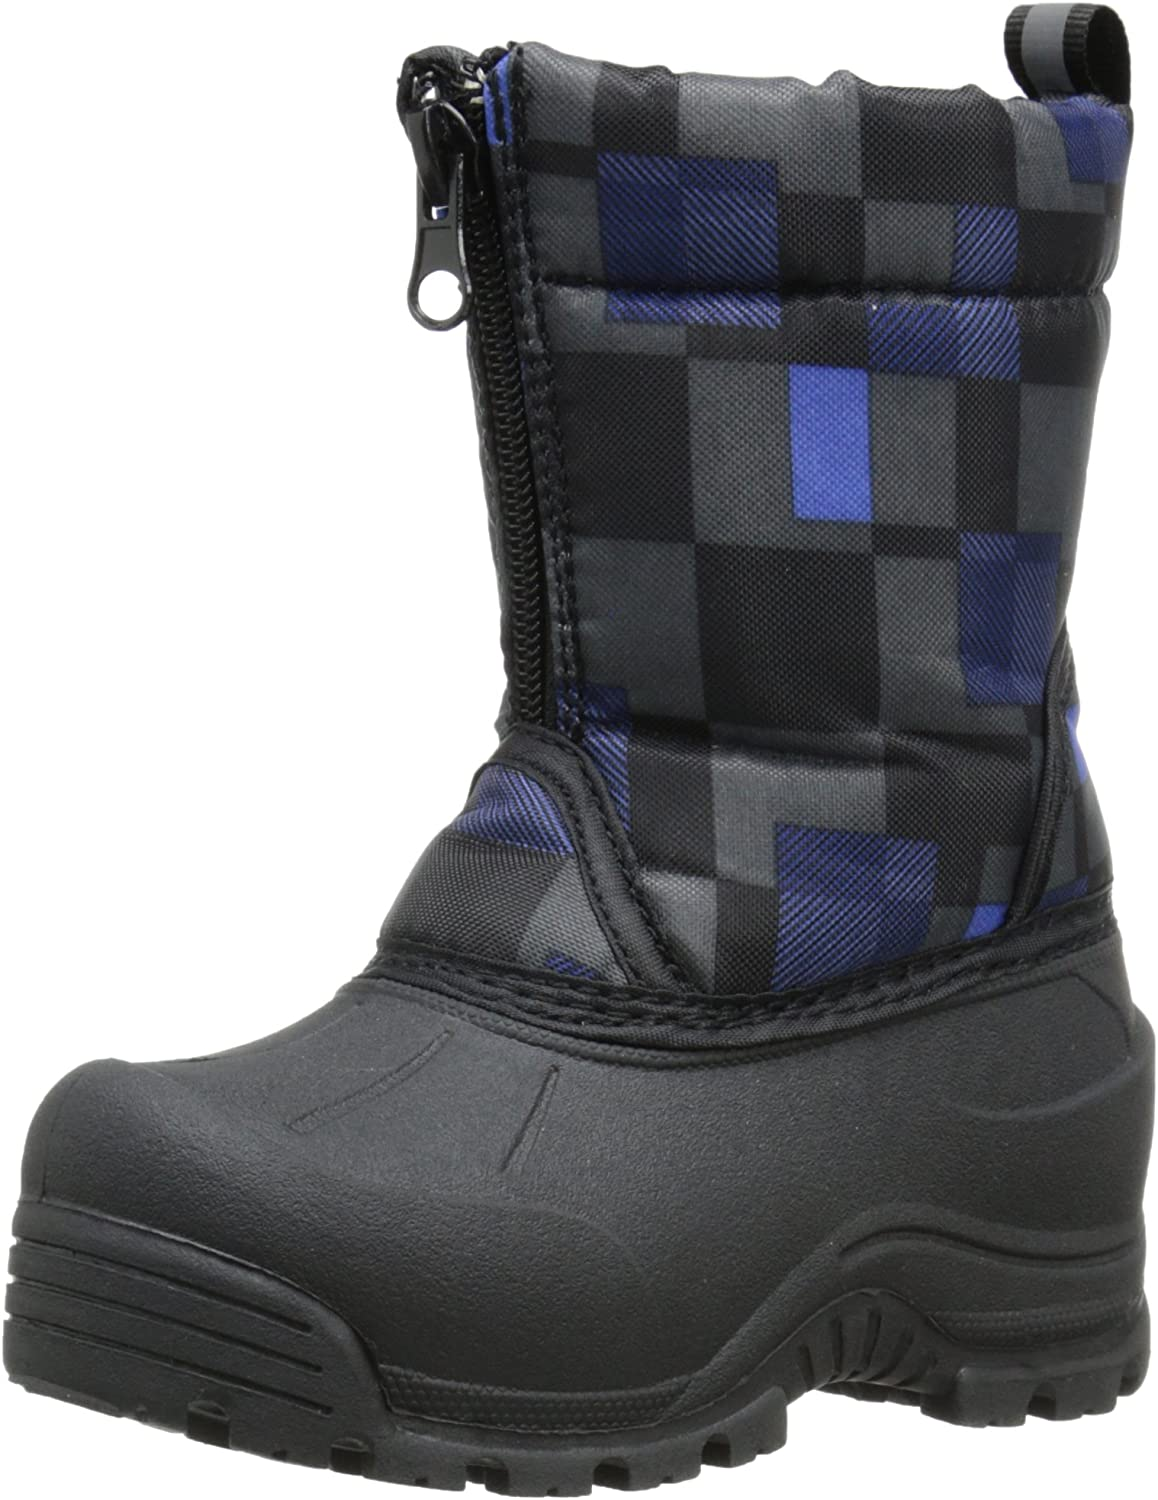 Northside Icicle Boot Free shipping anywhere in the nation 2021new shipping free shipping Snow